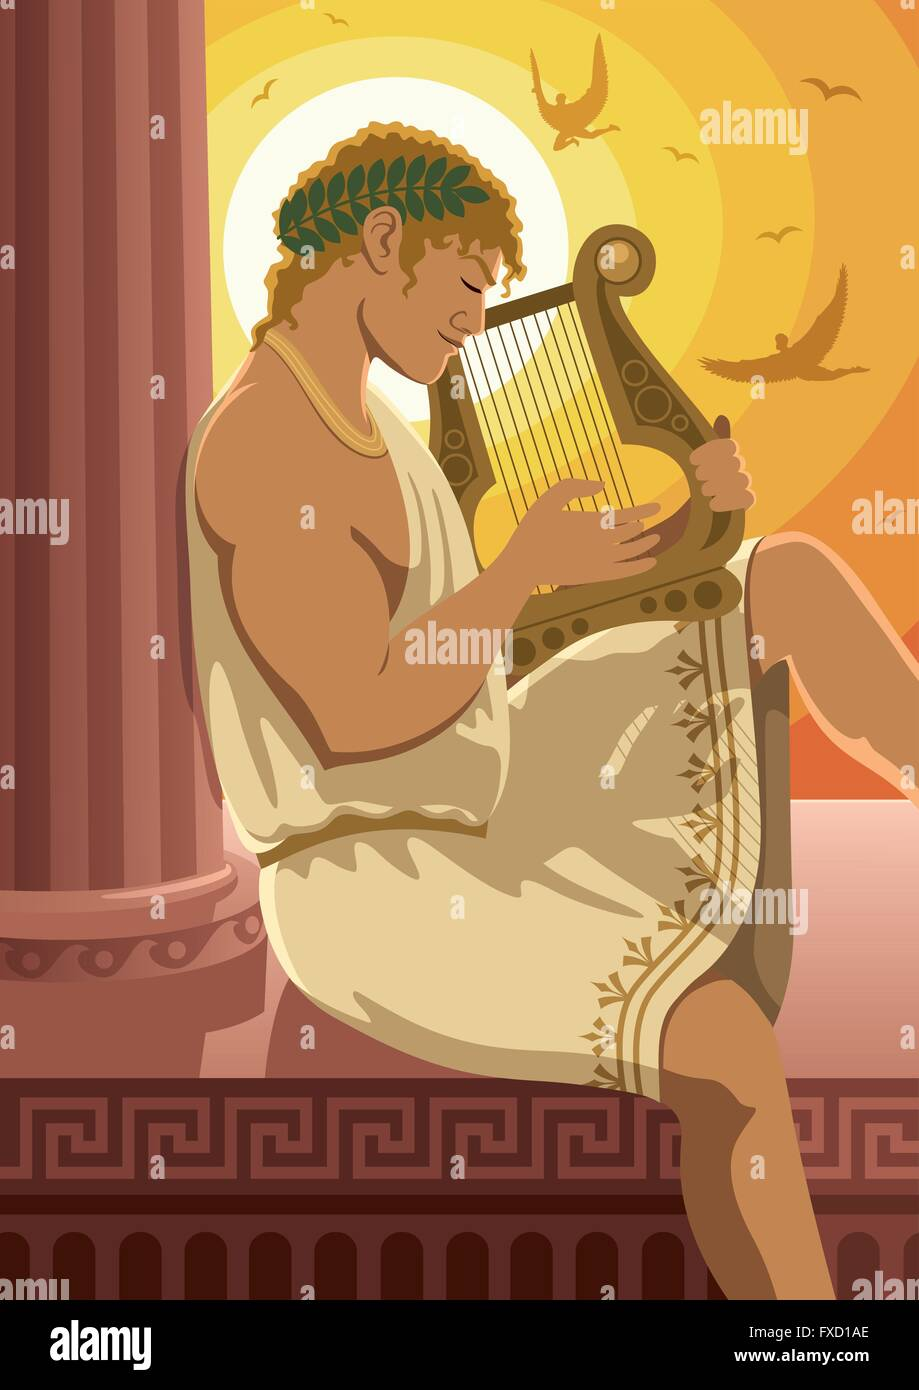 God of the sun Apollo playing his lyre. No transparency used. - Stock Vector